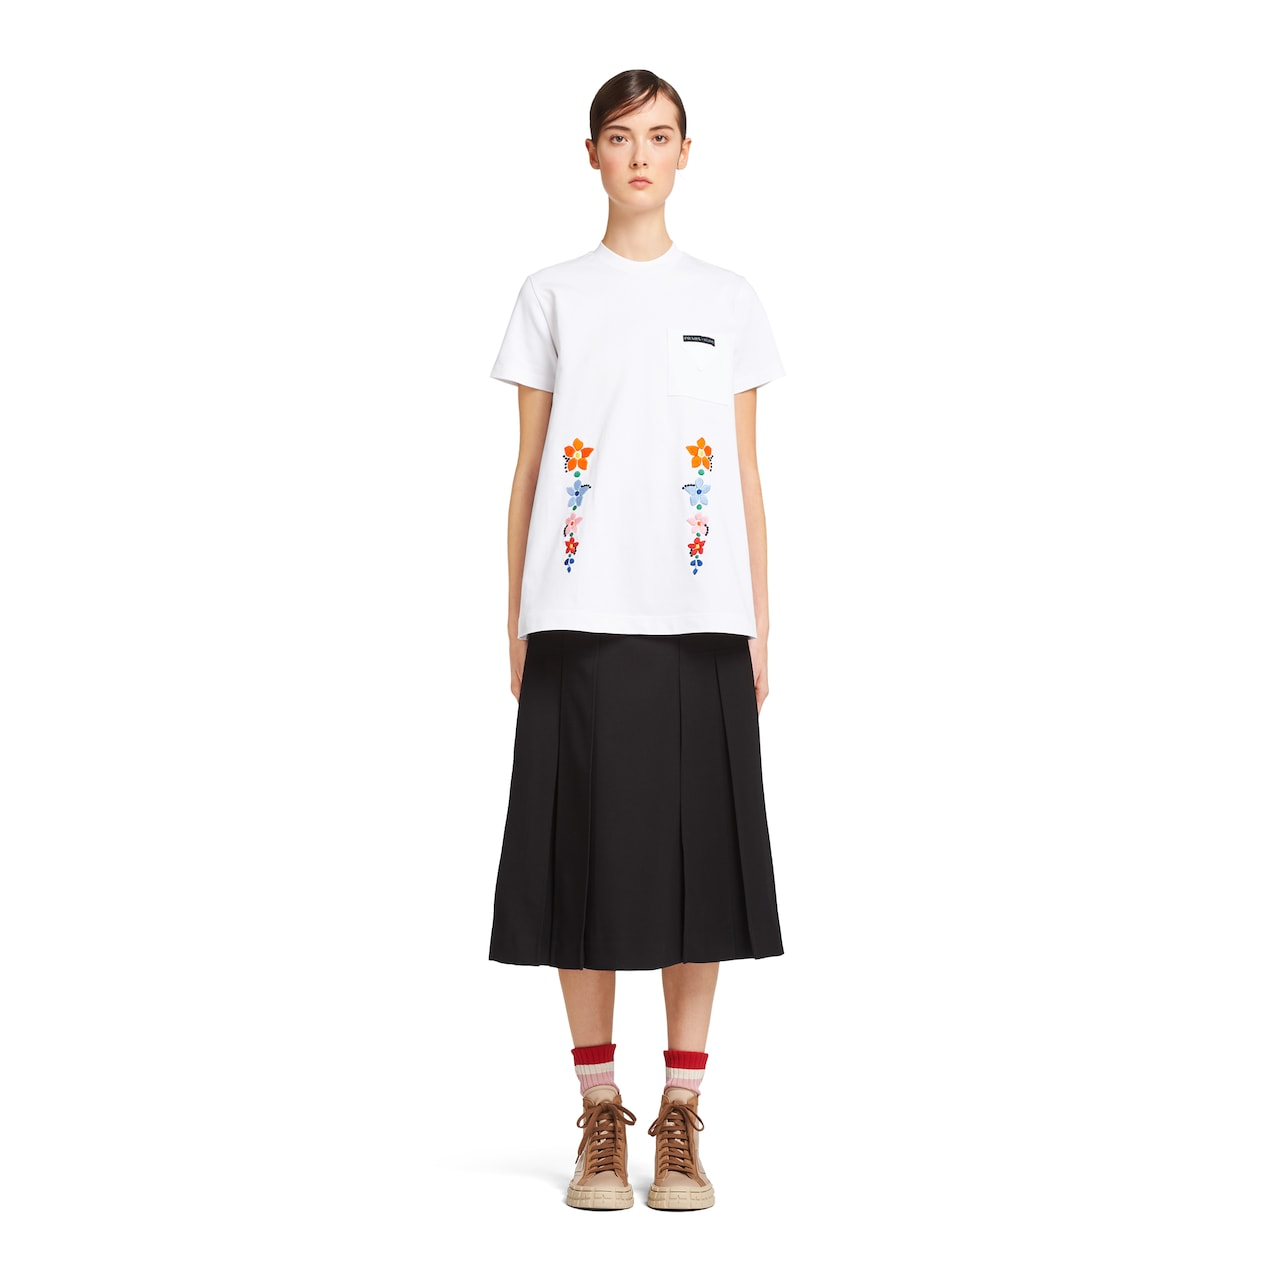 Prada Cotton jersey T-shirt with embroidery 2